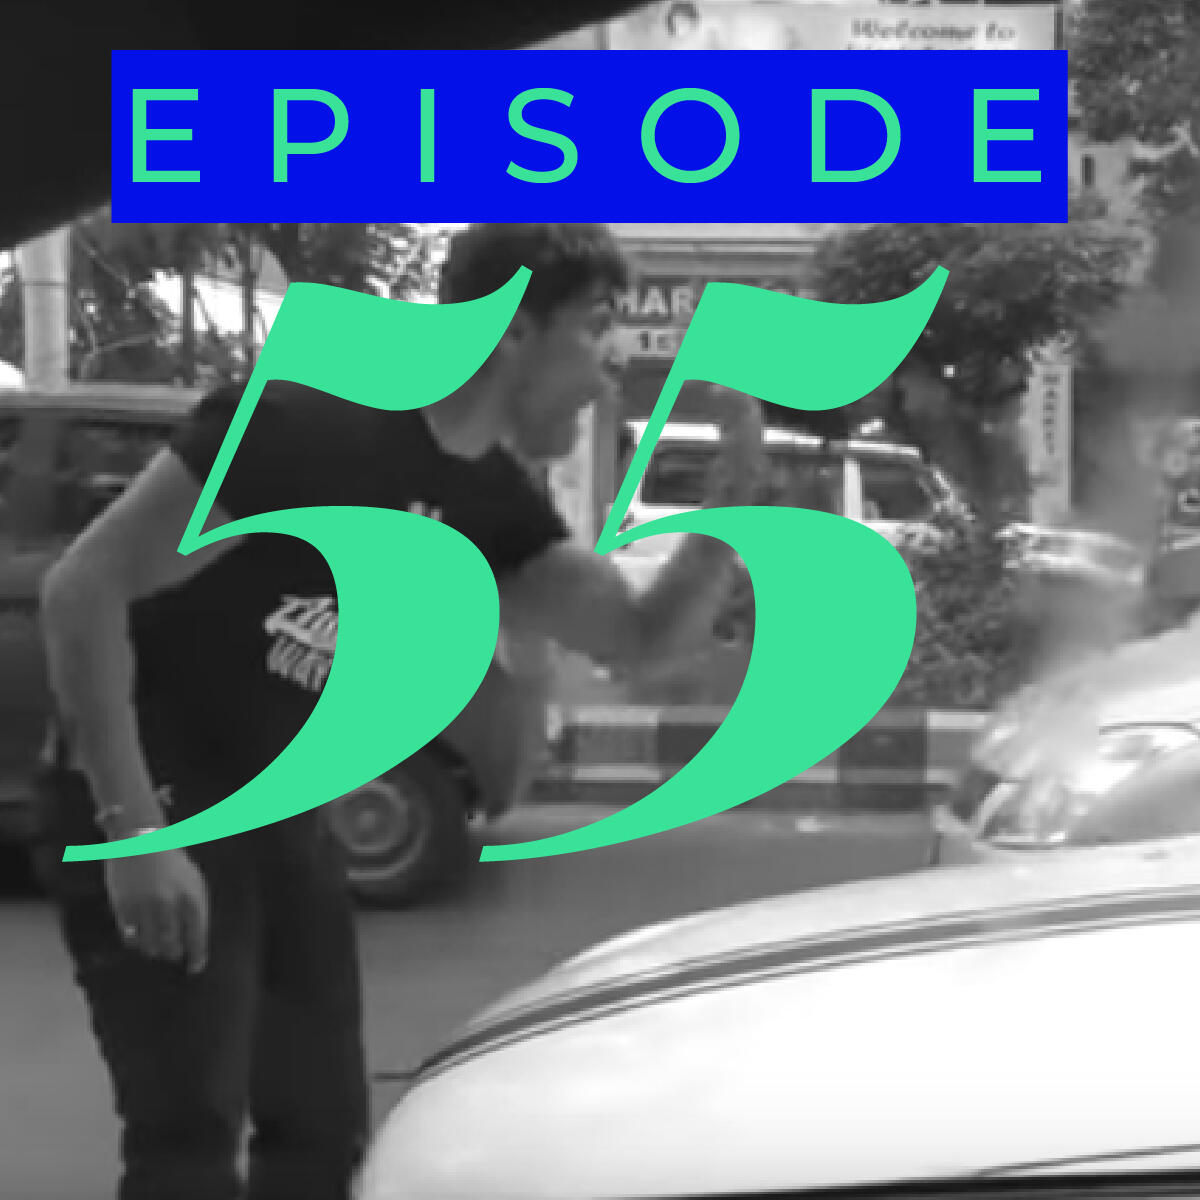 55: Automated driving test, IIT bull, Bali resort thieves